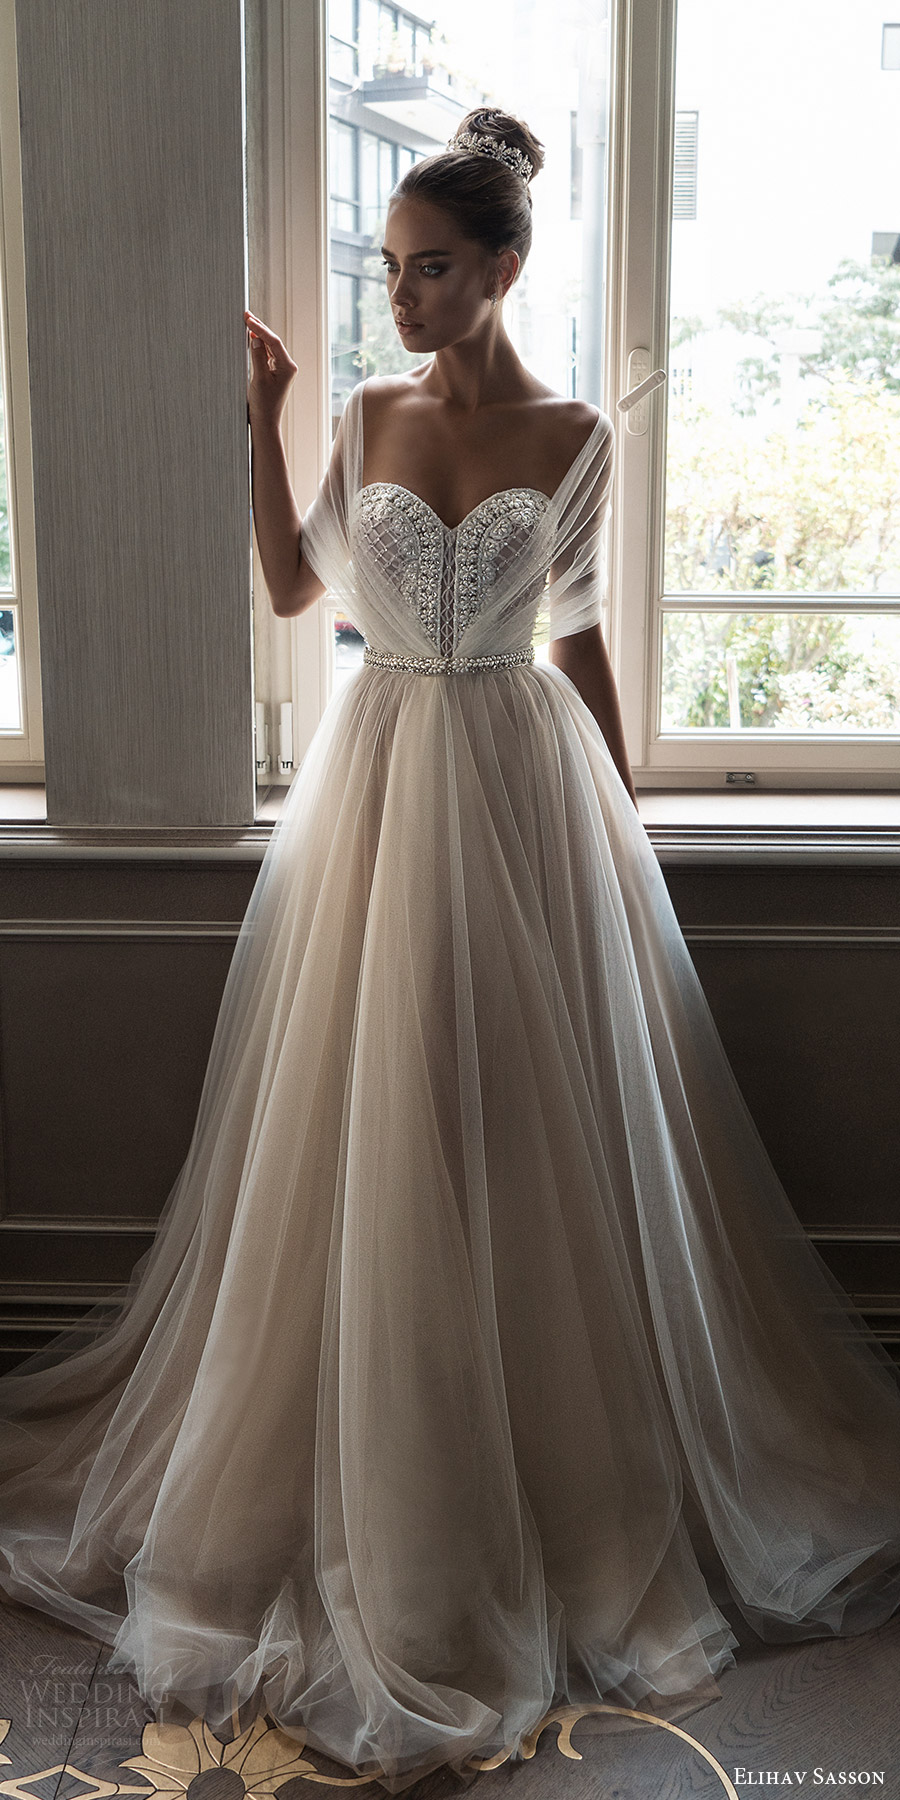 Designer beach wedding dresses 2018 cheap wedding dresses for Elegant ball gown wedding dresses